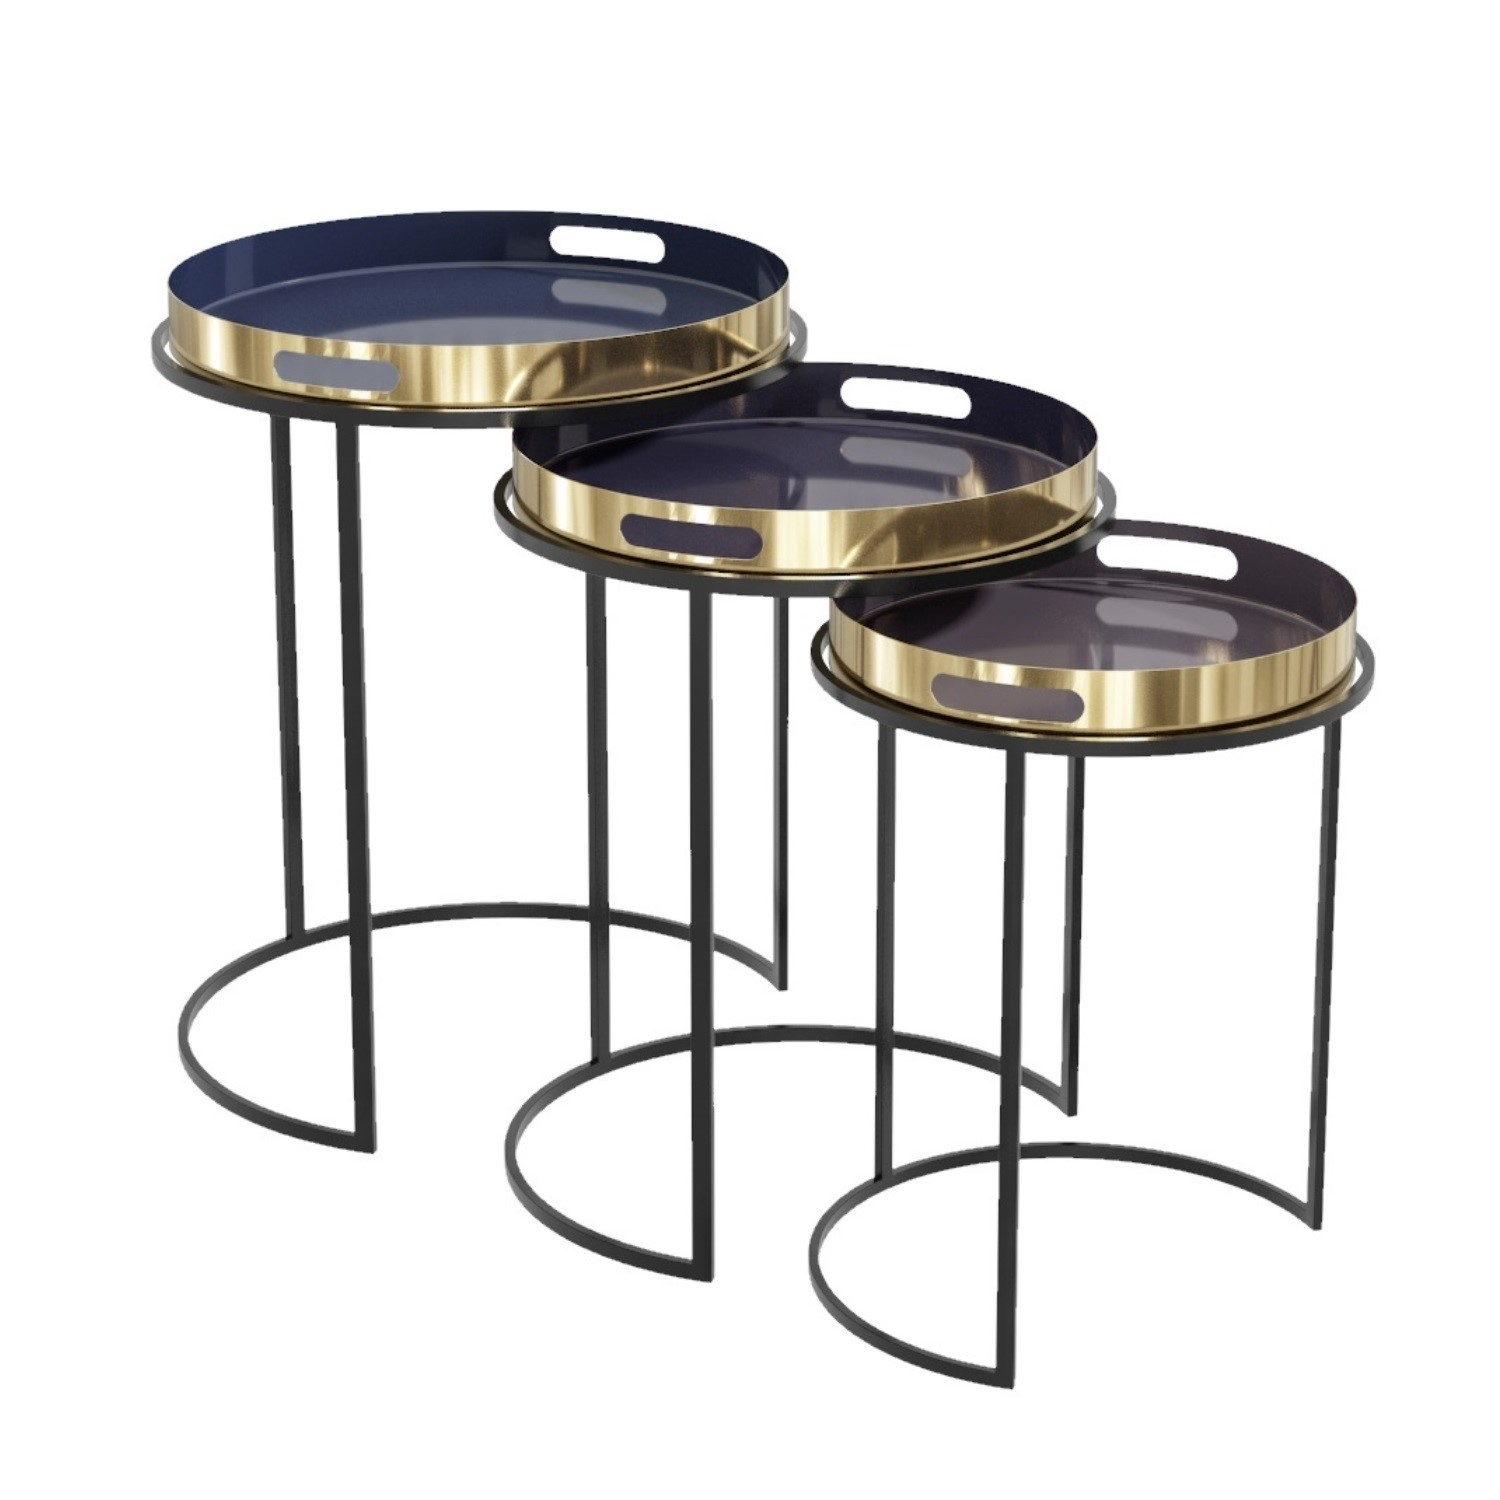 Set of 3 Tray Tables in Purple with Black & Gold Finish  Kaisa